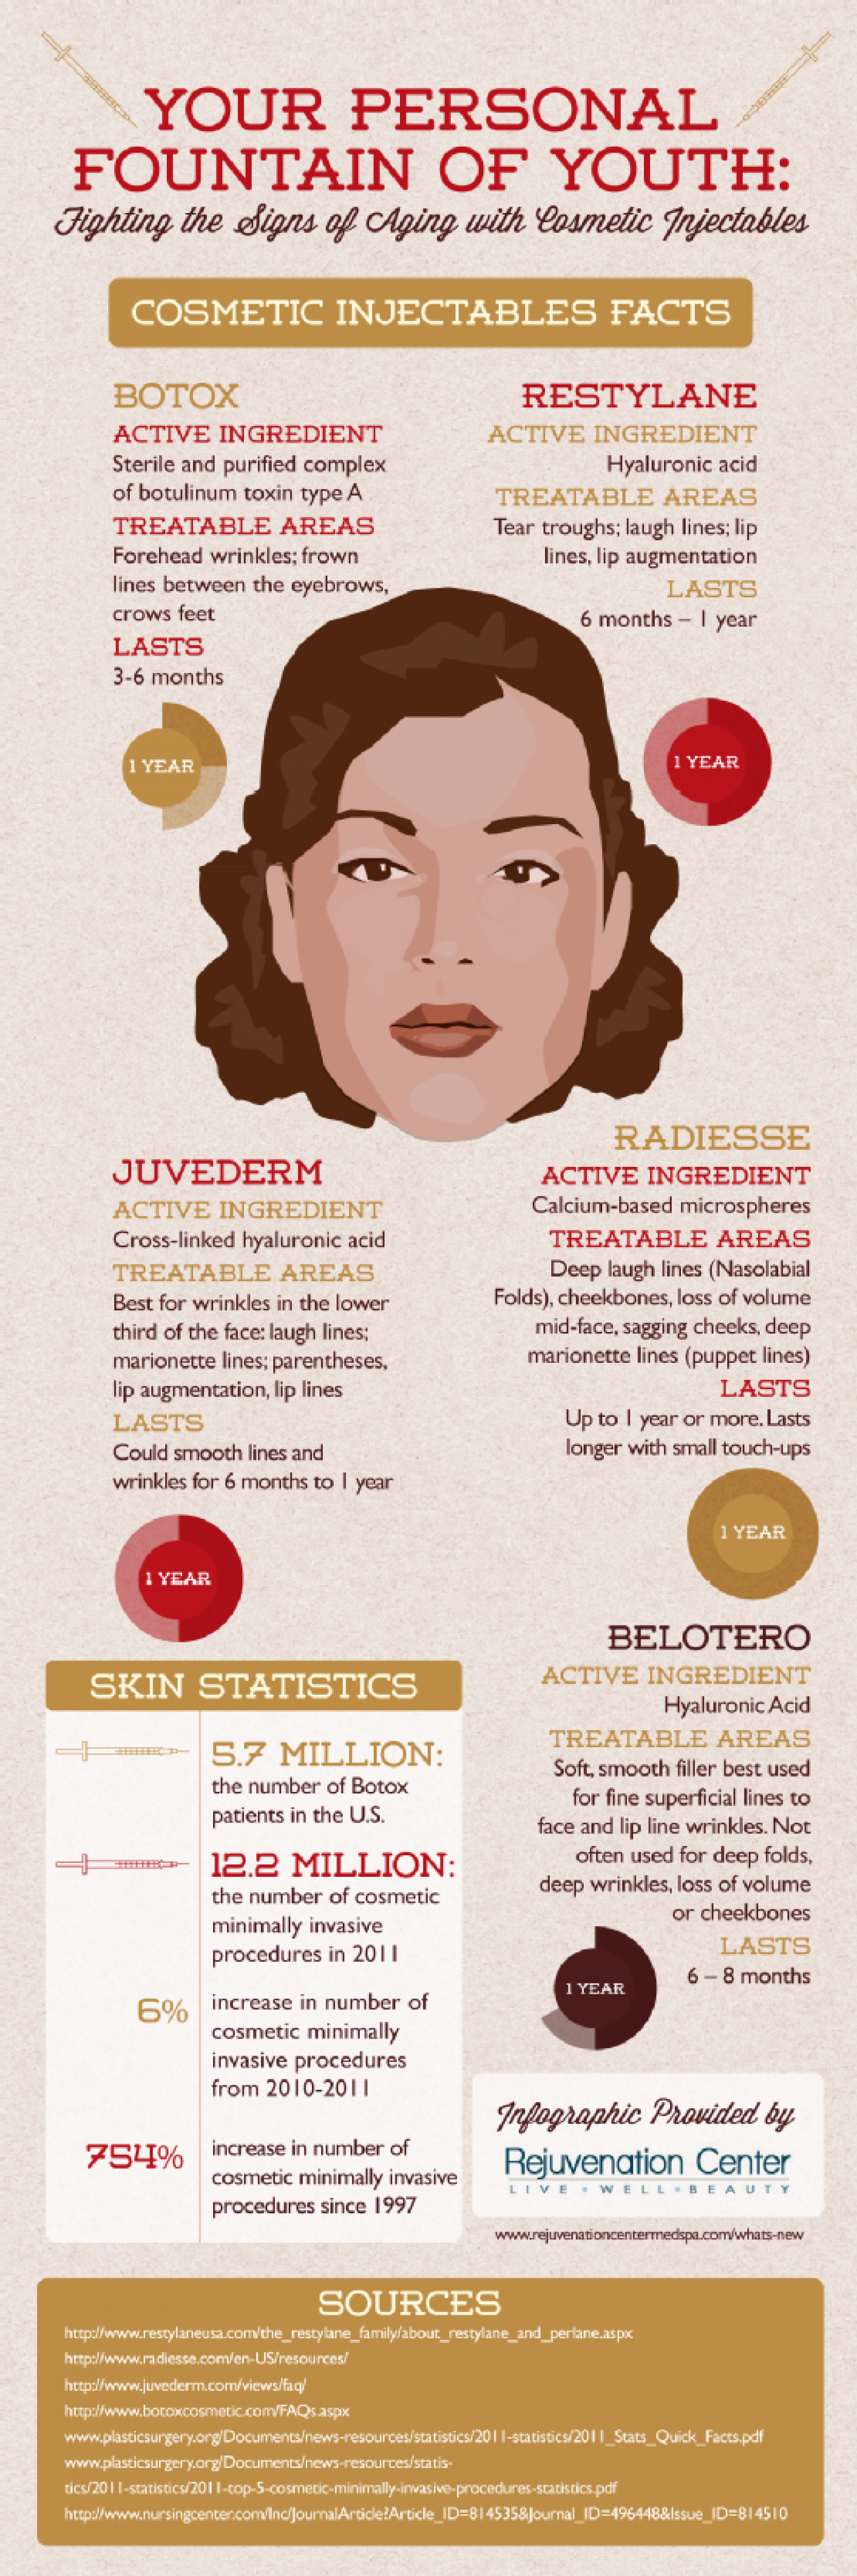 Your Personal Fountain of Youth: Fighting the Signs of Aging with Cosmetic Injectables Infographic